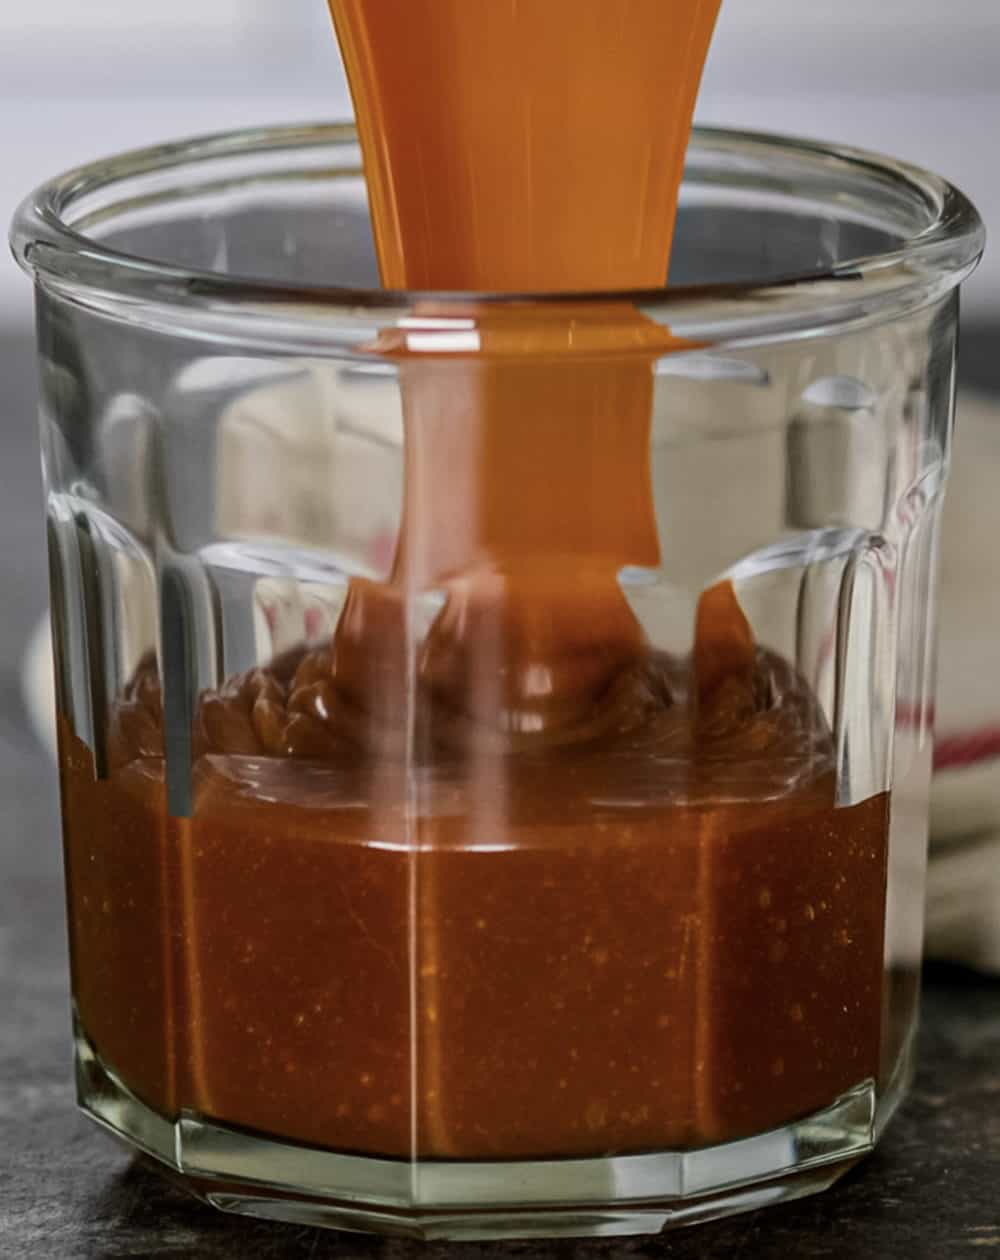 caramel being poured into a glass container